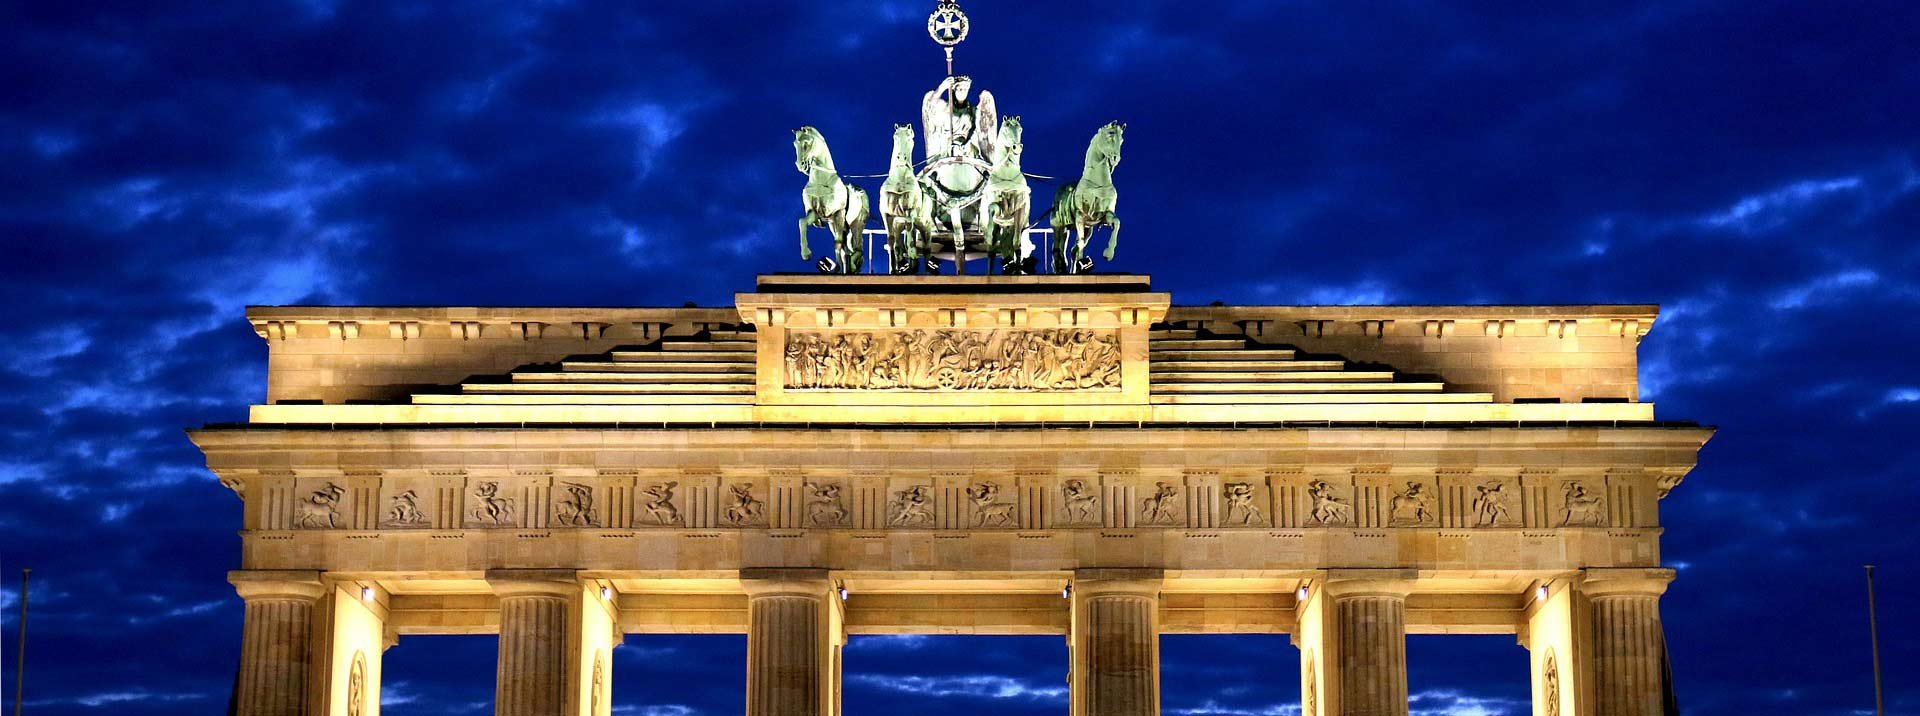 Discounted flight tickets from New York to Berlin - IFlyFirstClass